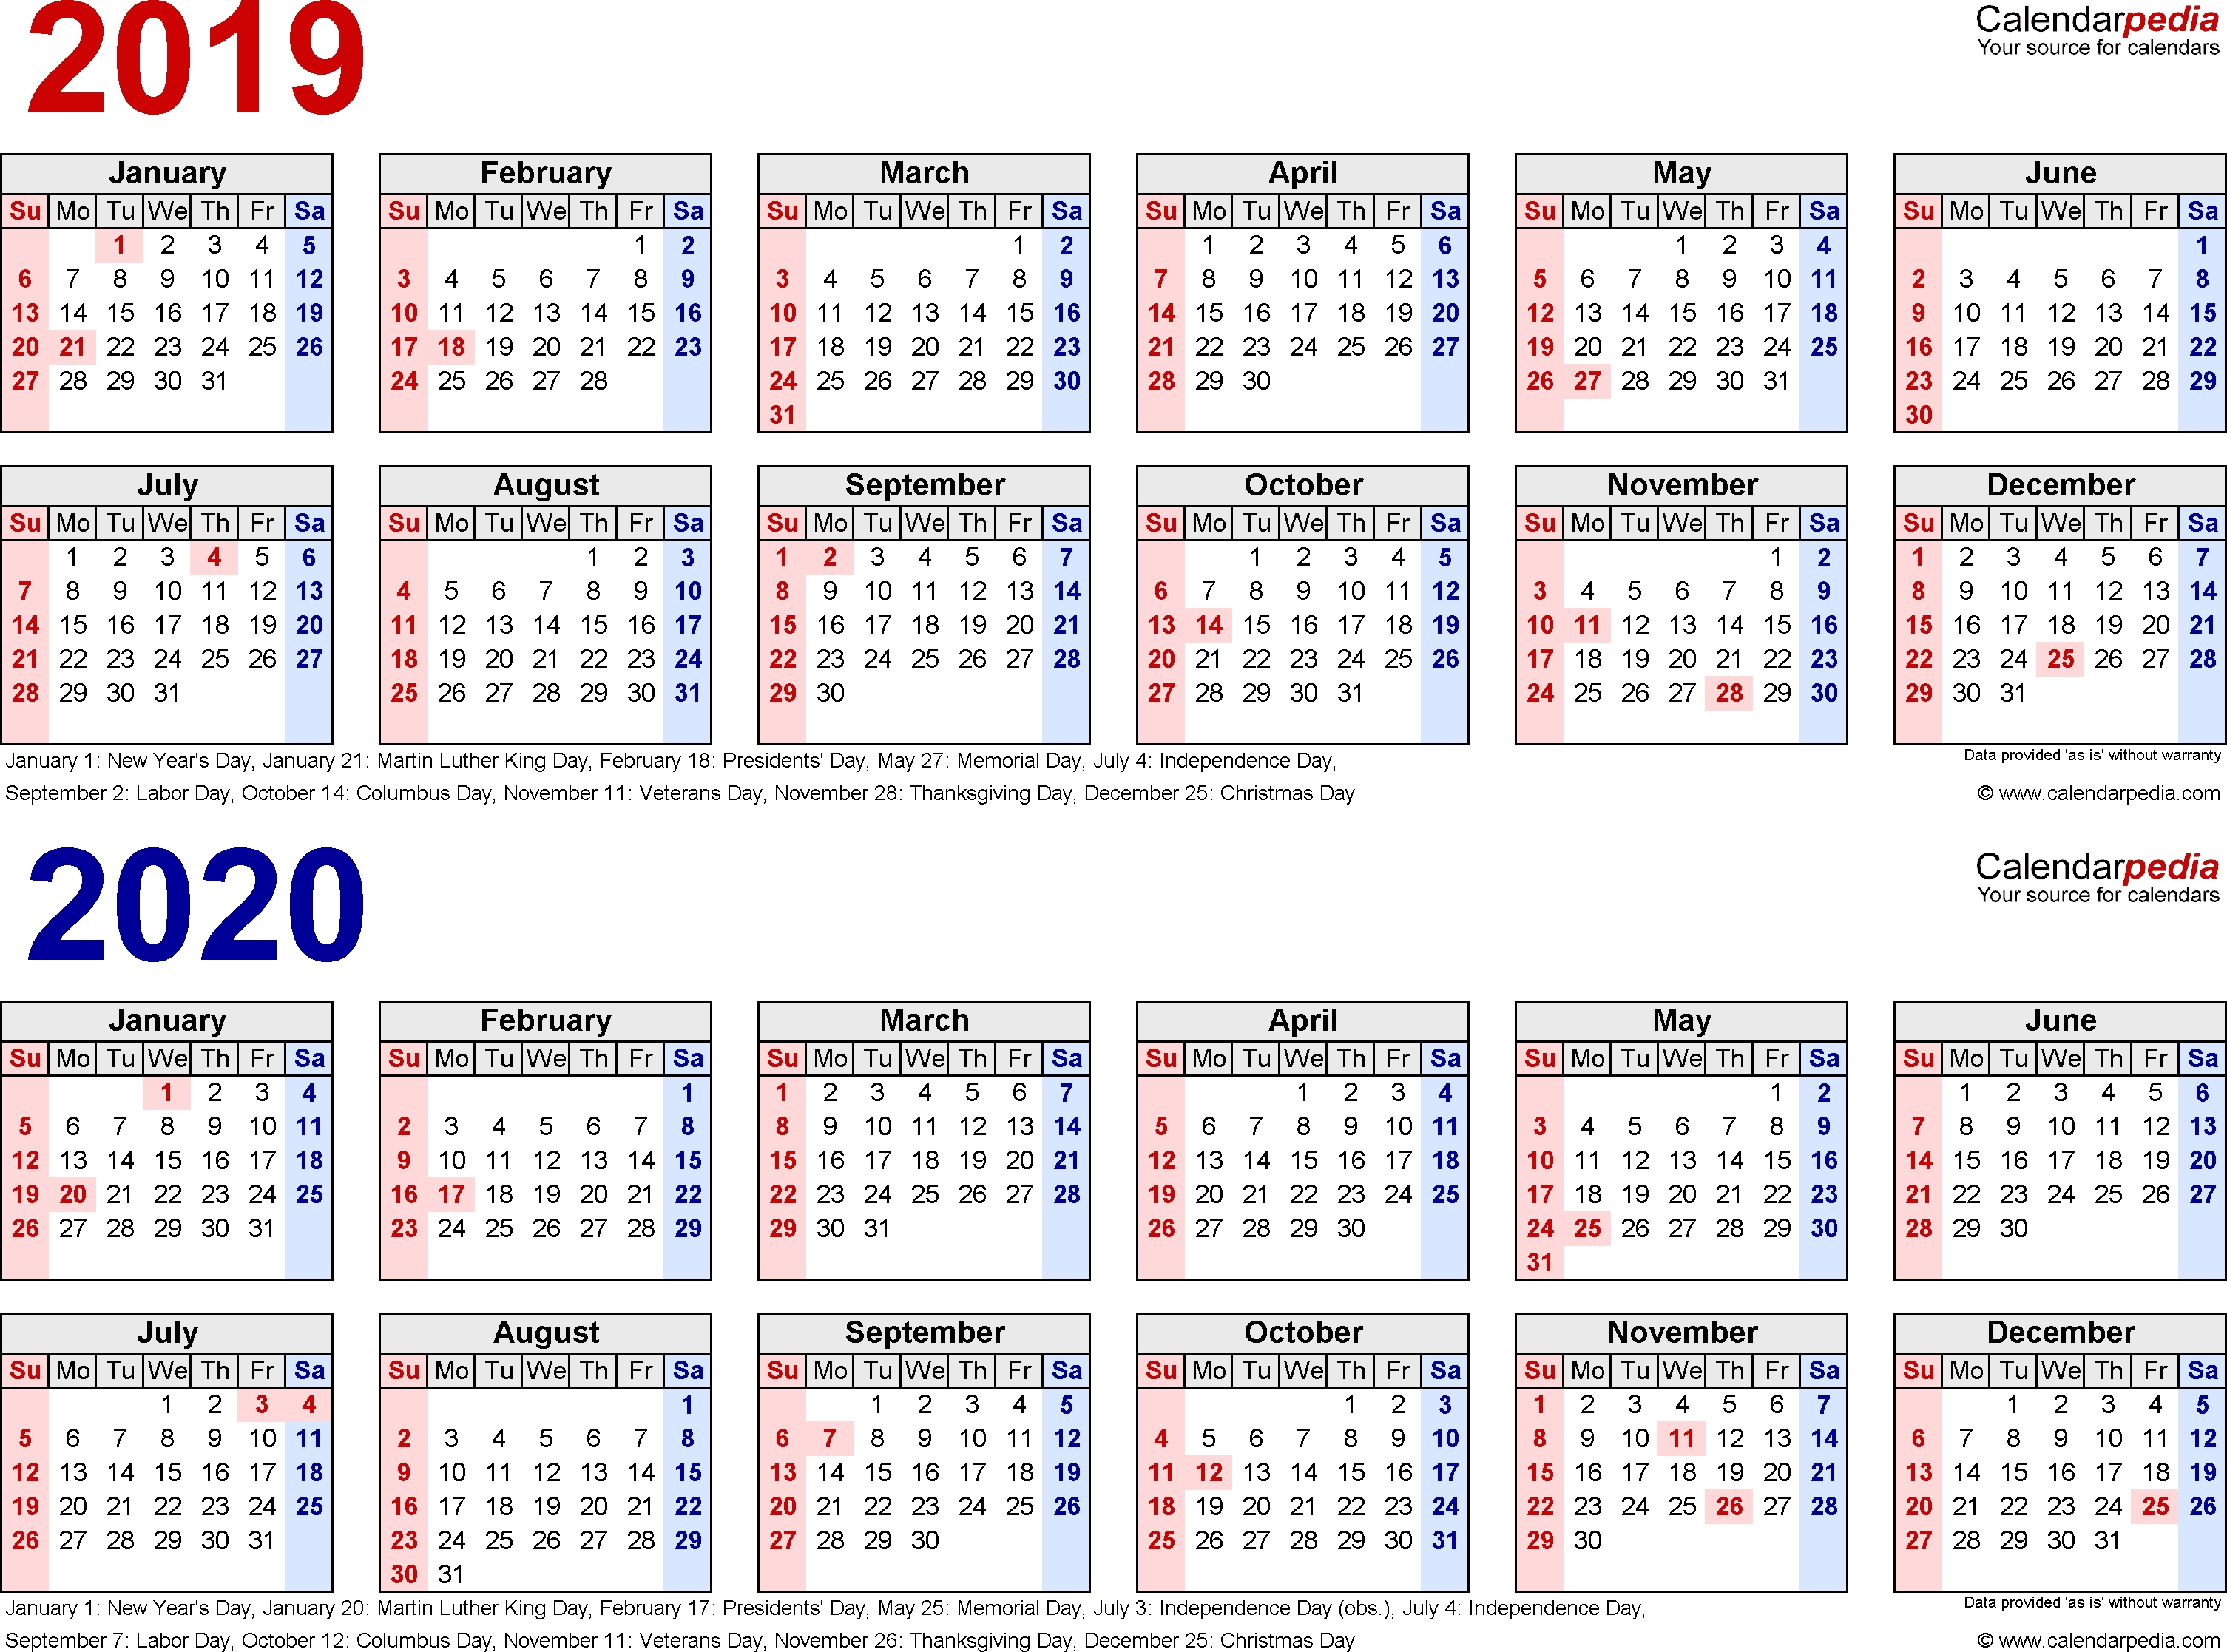 2019-2020 Calendar - Free Printable Two-Year Excel Calendars within Printable Custom Calendar 2019-2020